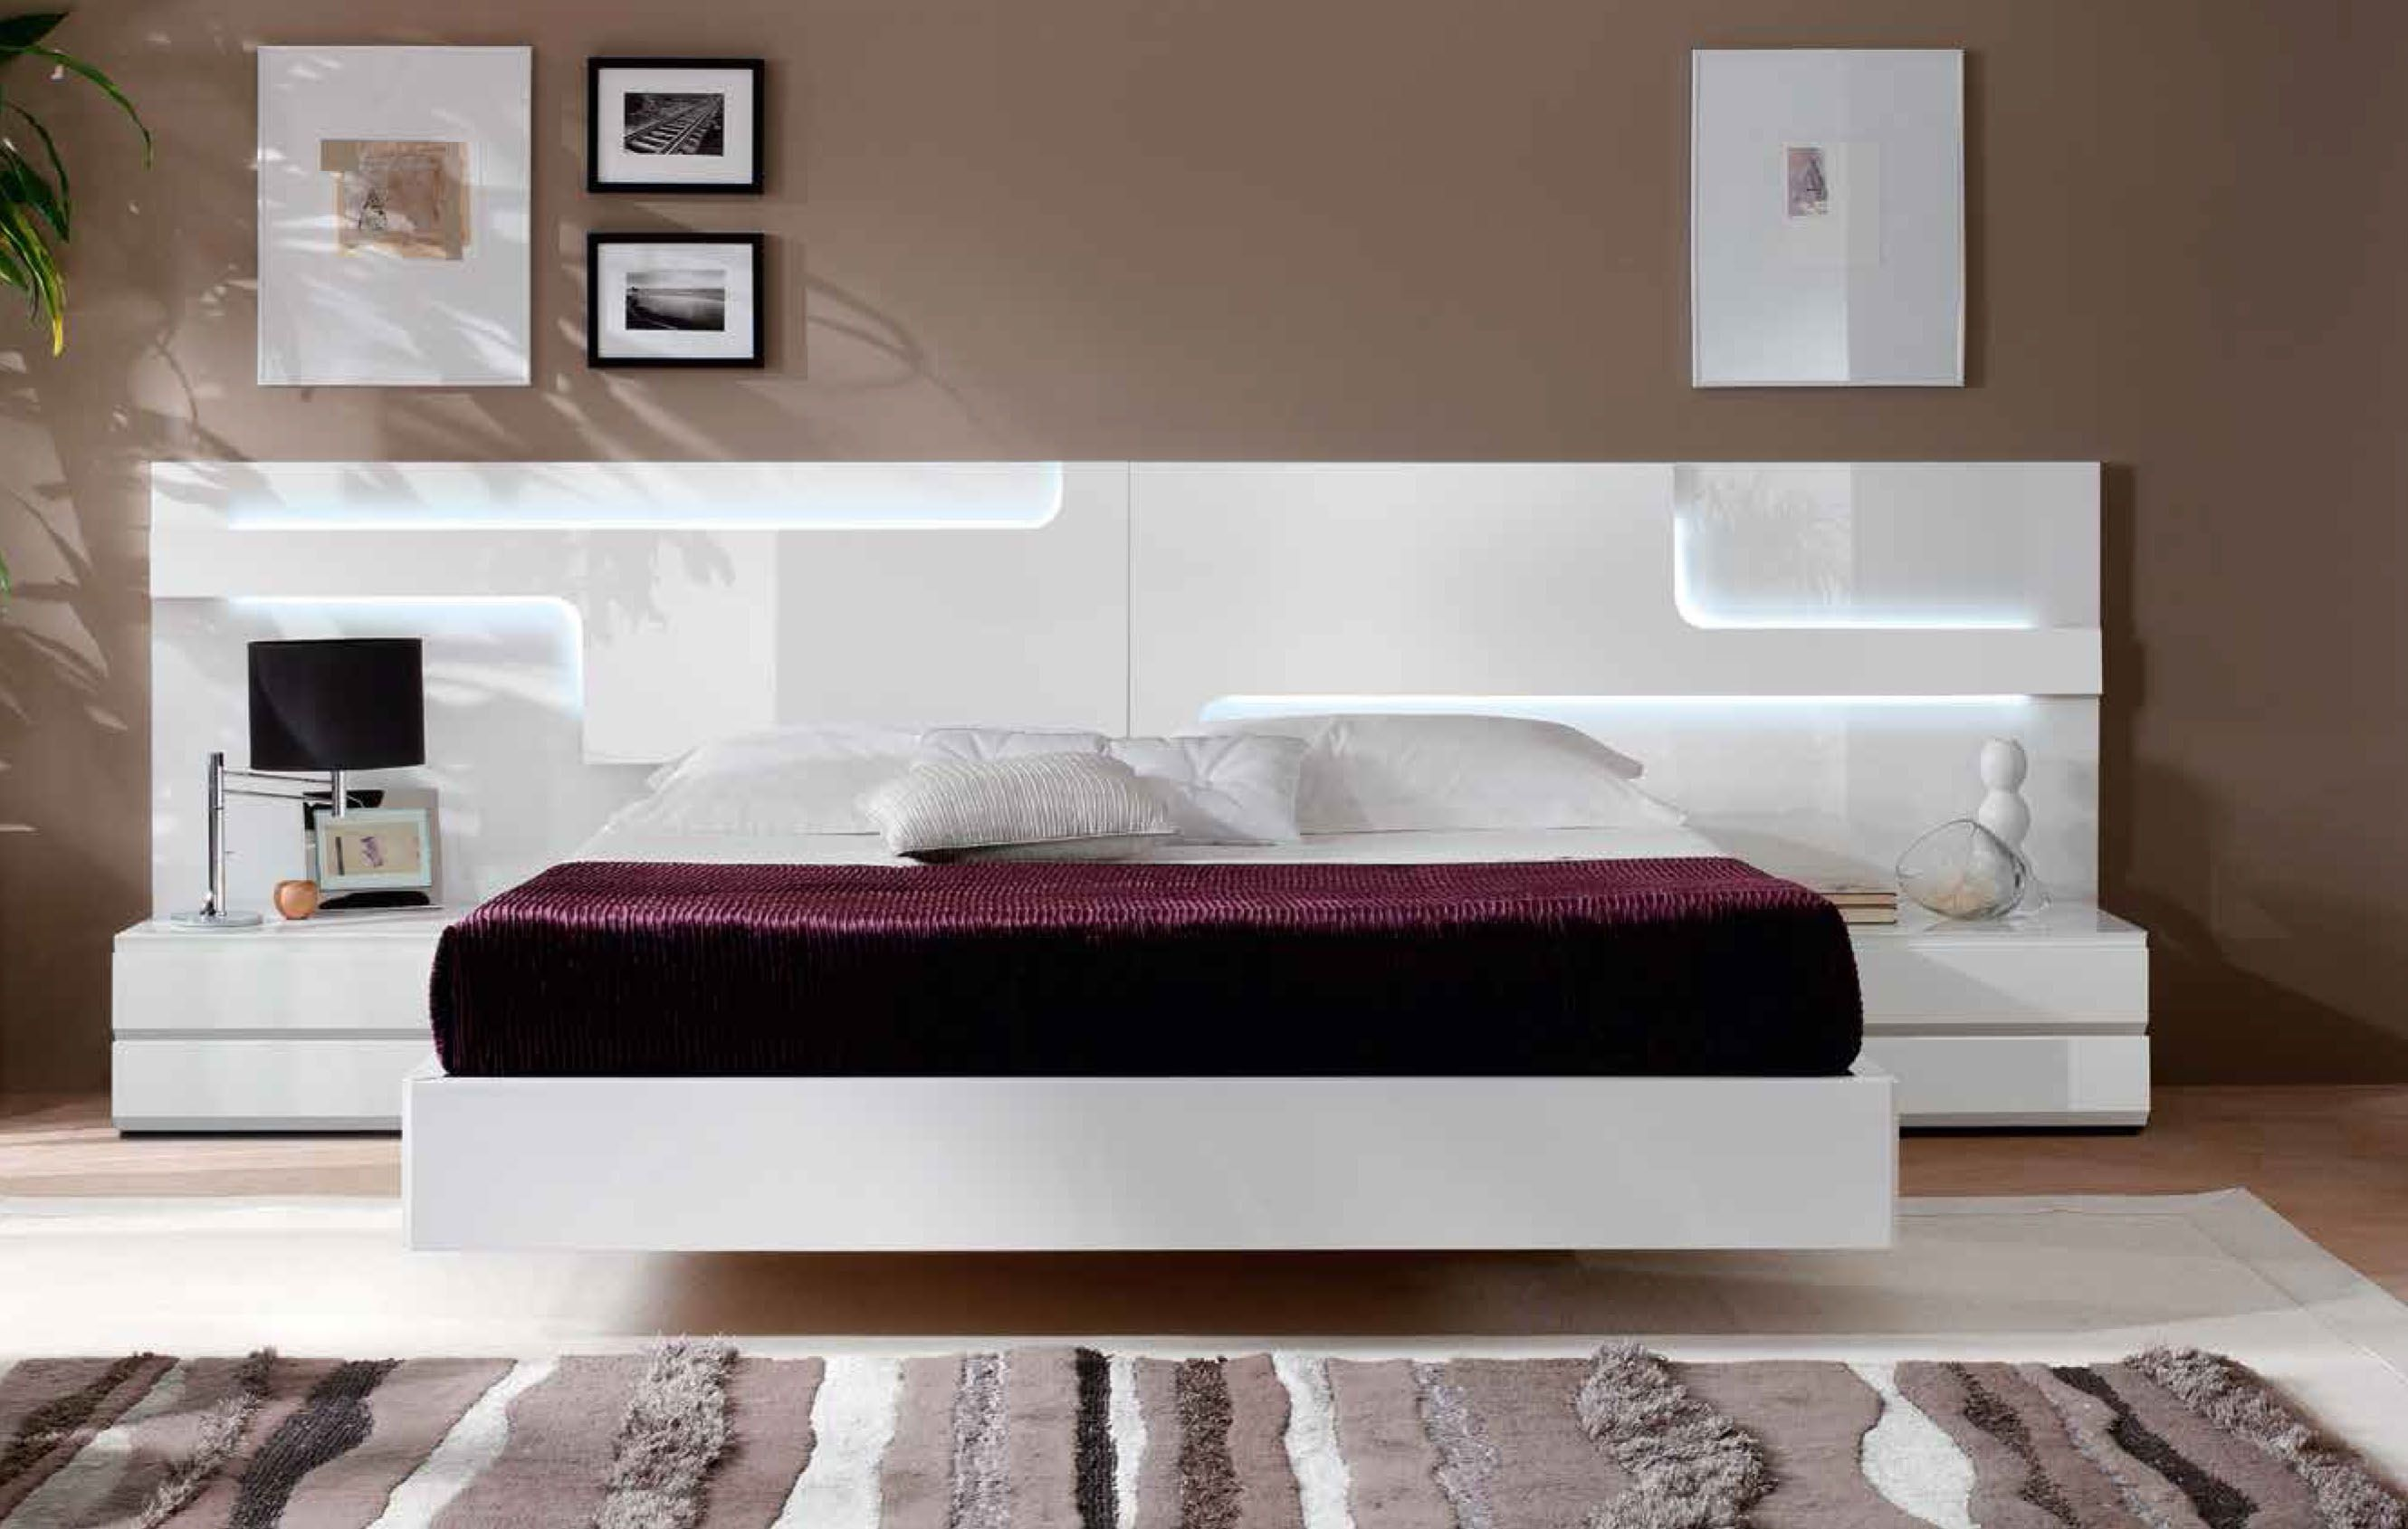 Bed designs with storage - Storage Furniture Luxury Made In Spain Wood Platform And Headboard Bed With